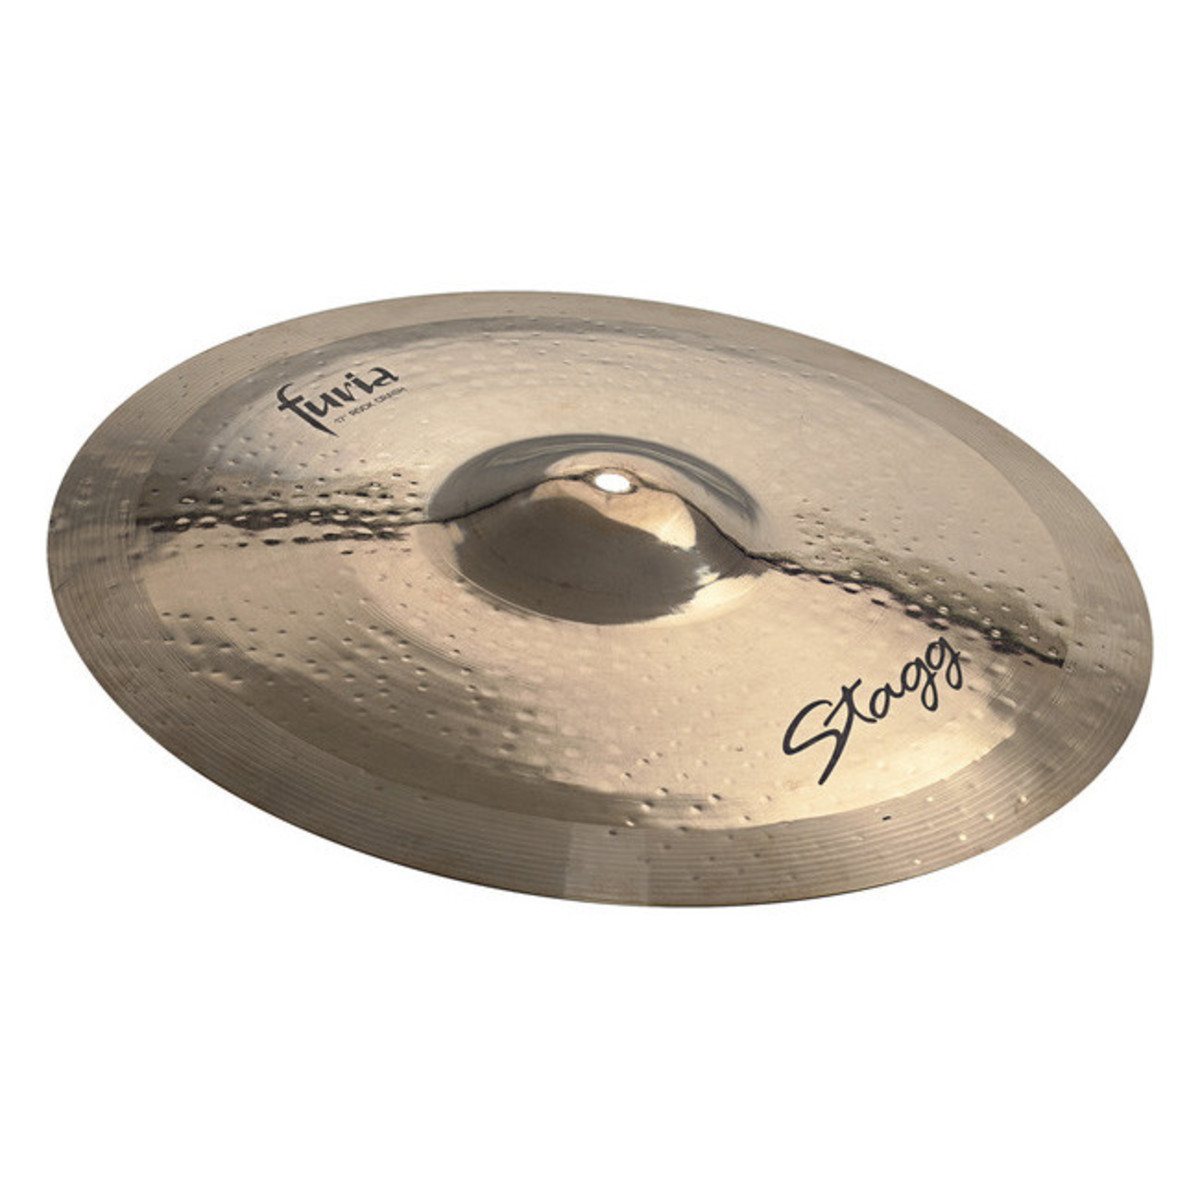 DISC Stagg Furia 17'' Rock Crash Cymbal